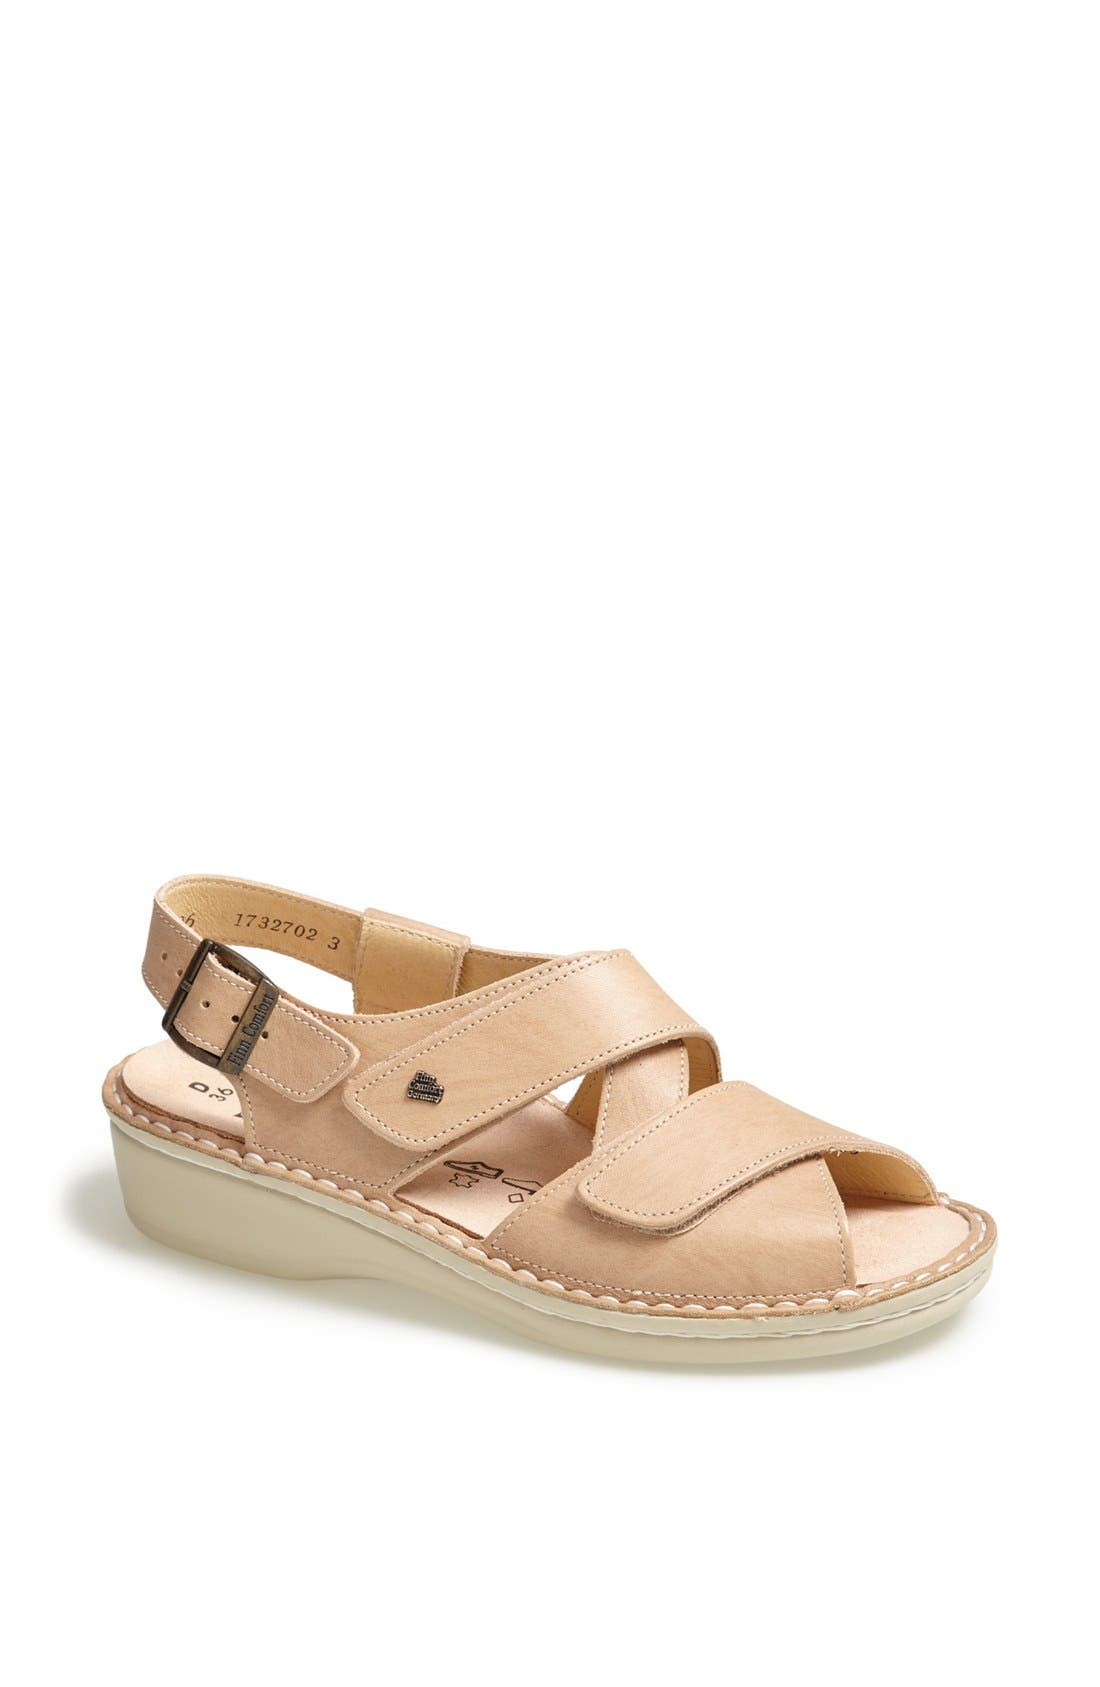 'Jersey' Sandal,                         Main,                         color, STO